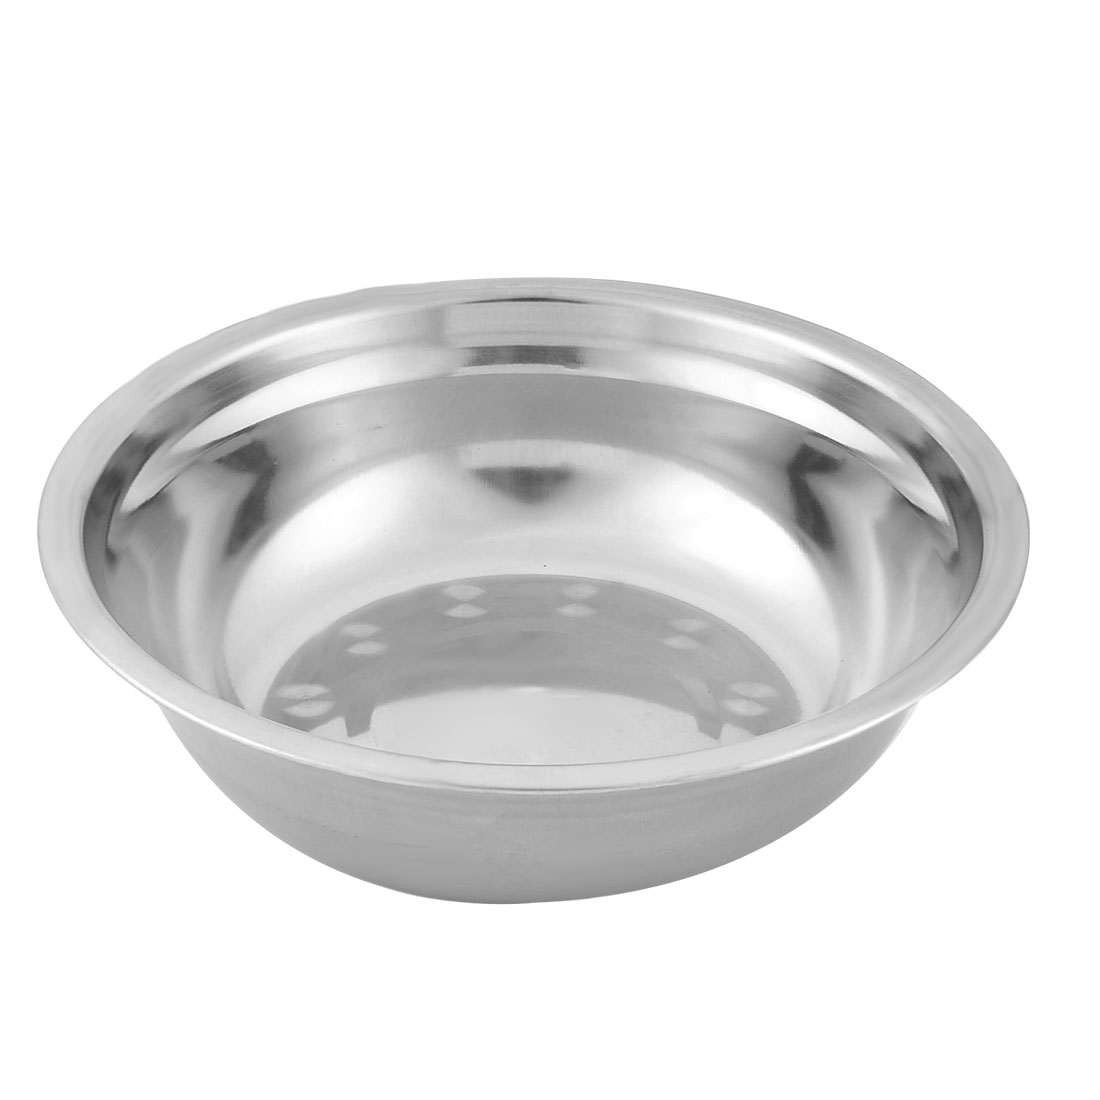 Household Kitchen Stainless Steel Fruit Soup Rice Dinner Bowl 21cm Diameter Silver Tone